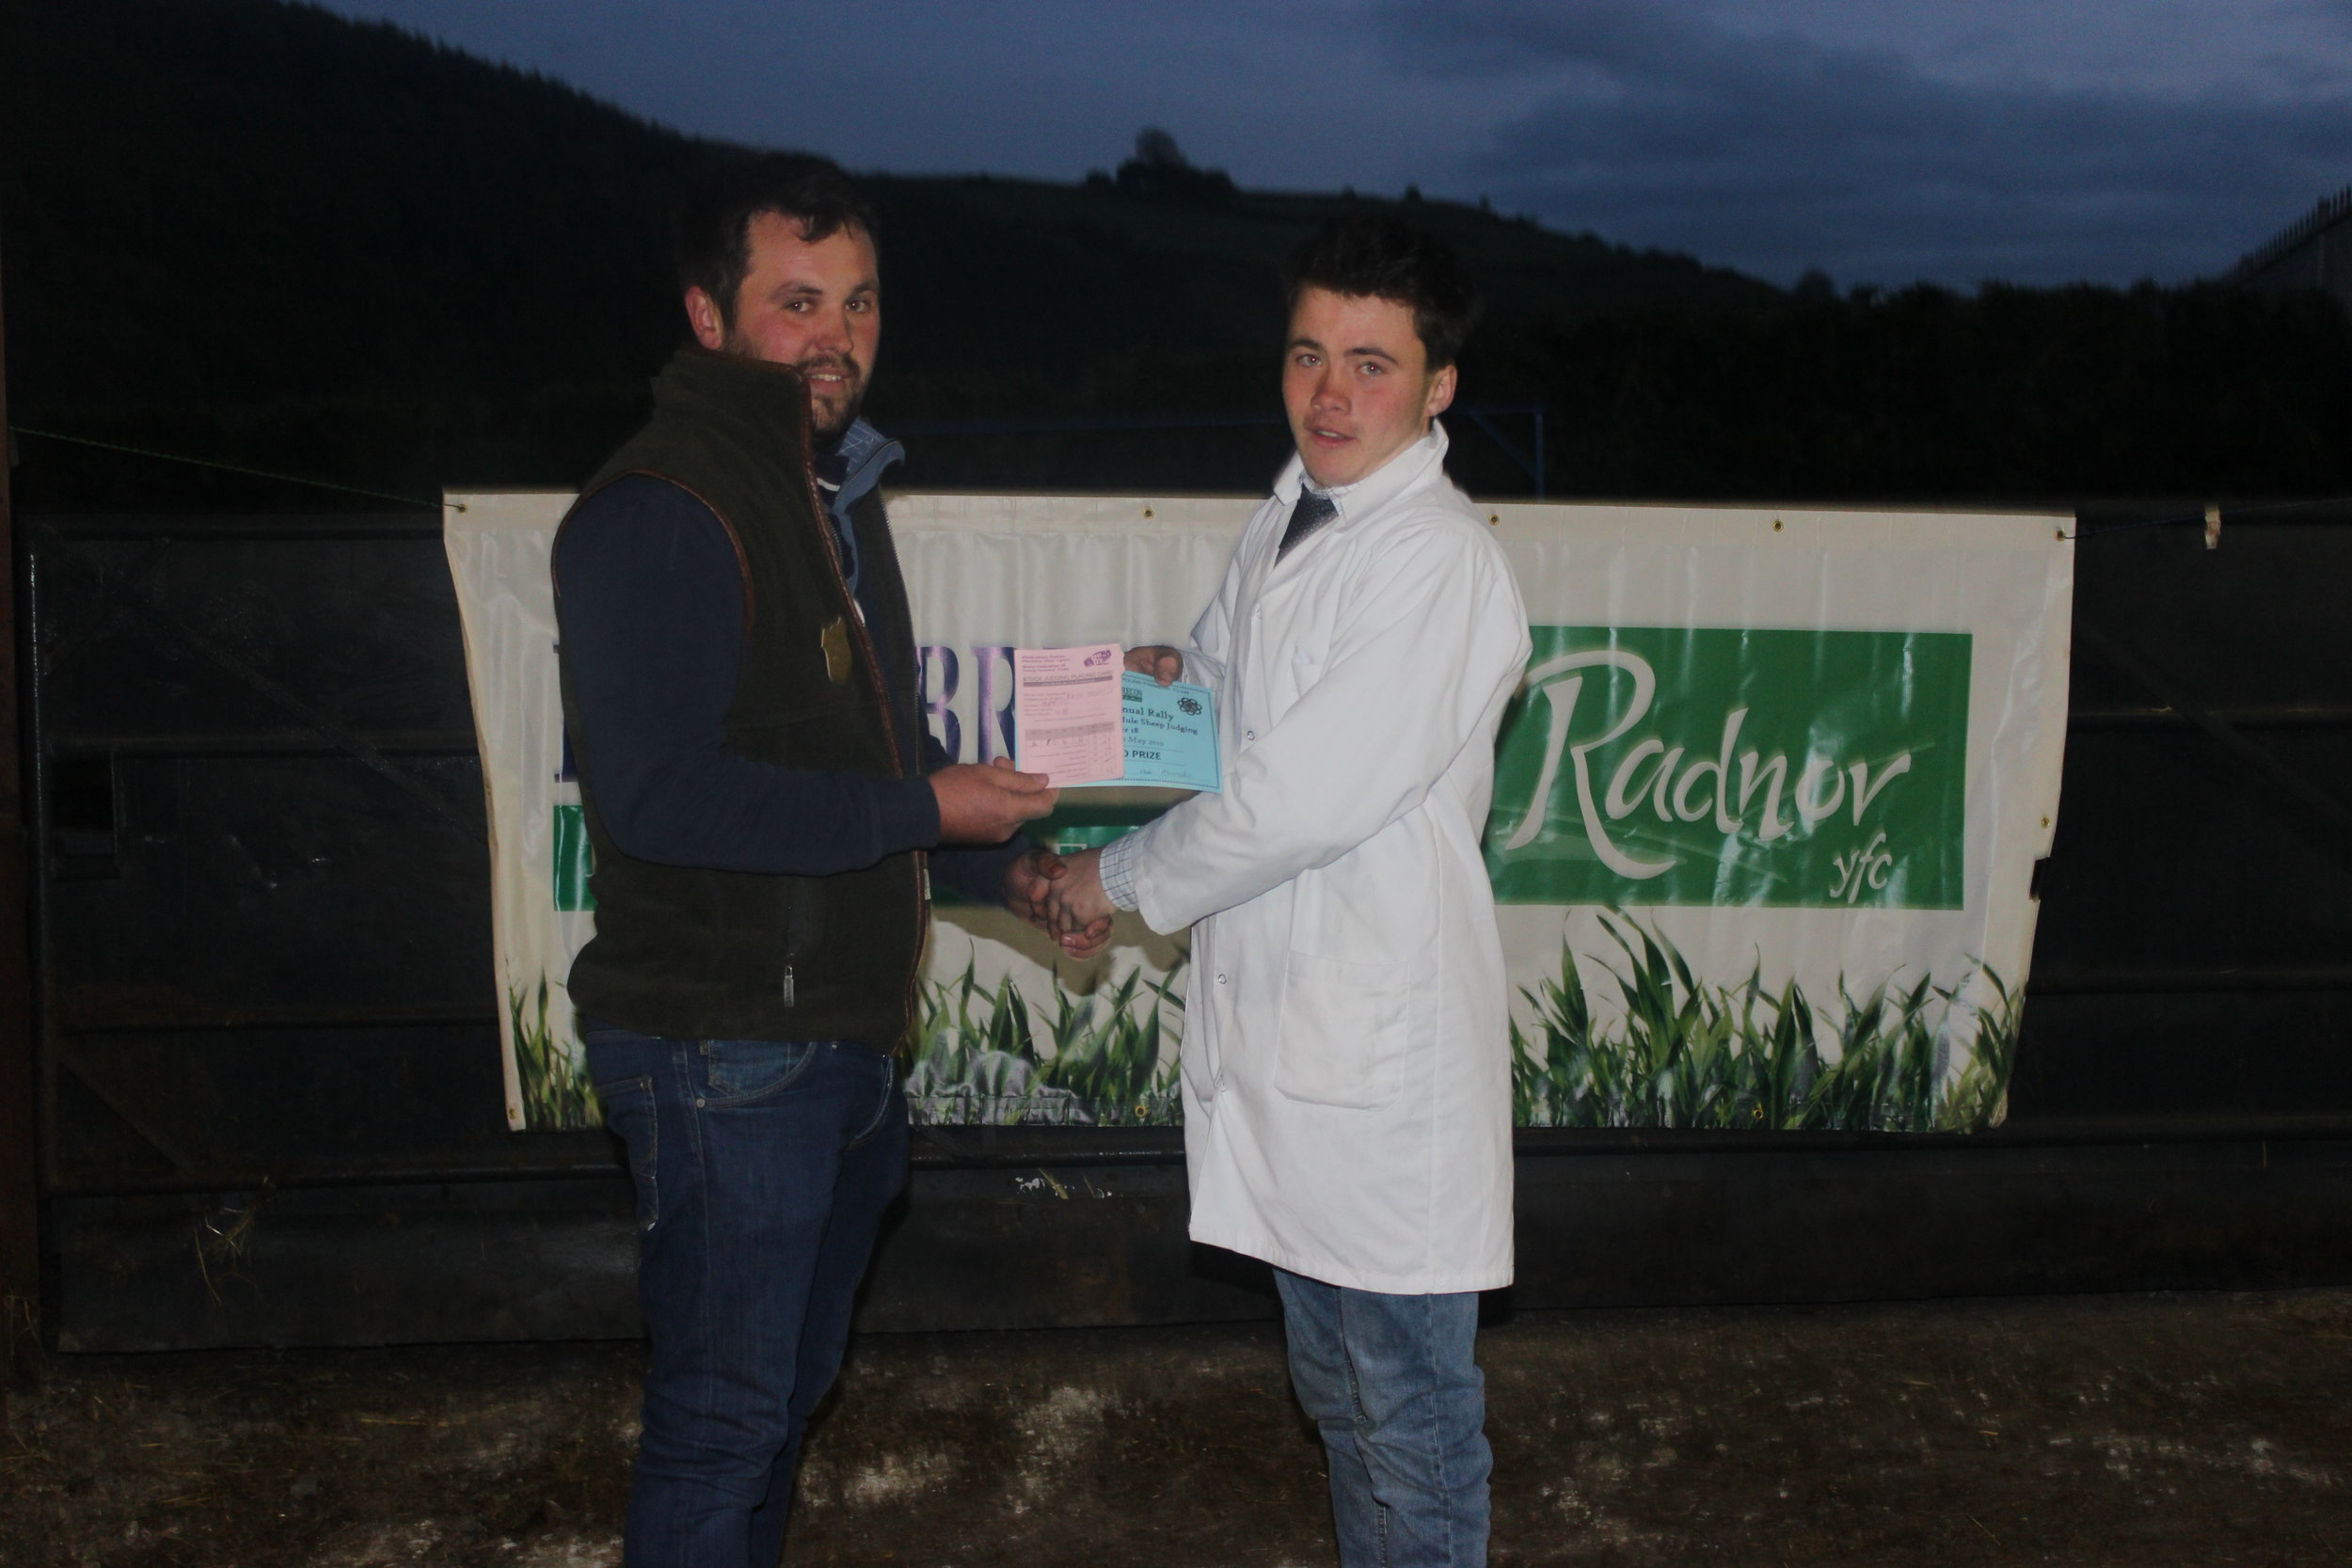 Rhys Morris, Aberedw YFC - 2nd place in the Under 18 Welsh Mule Stockjudging with Judge Will Jones.